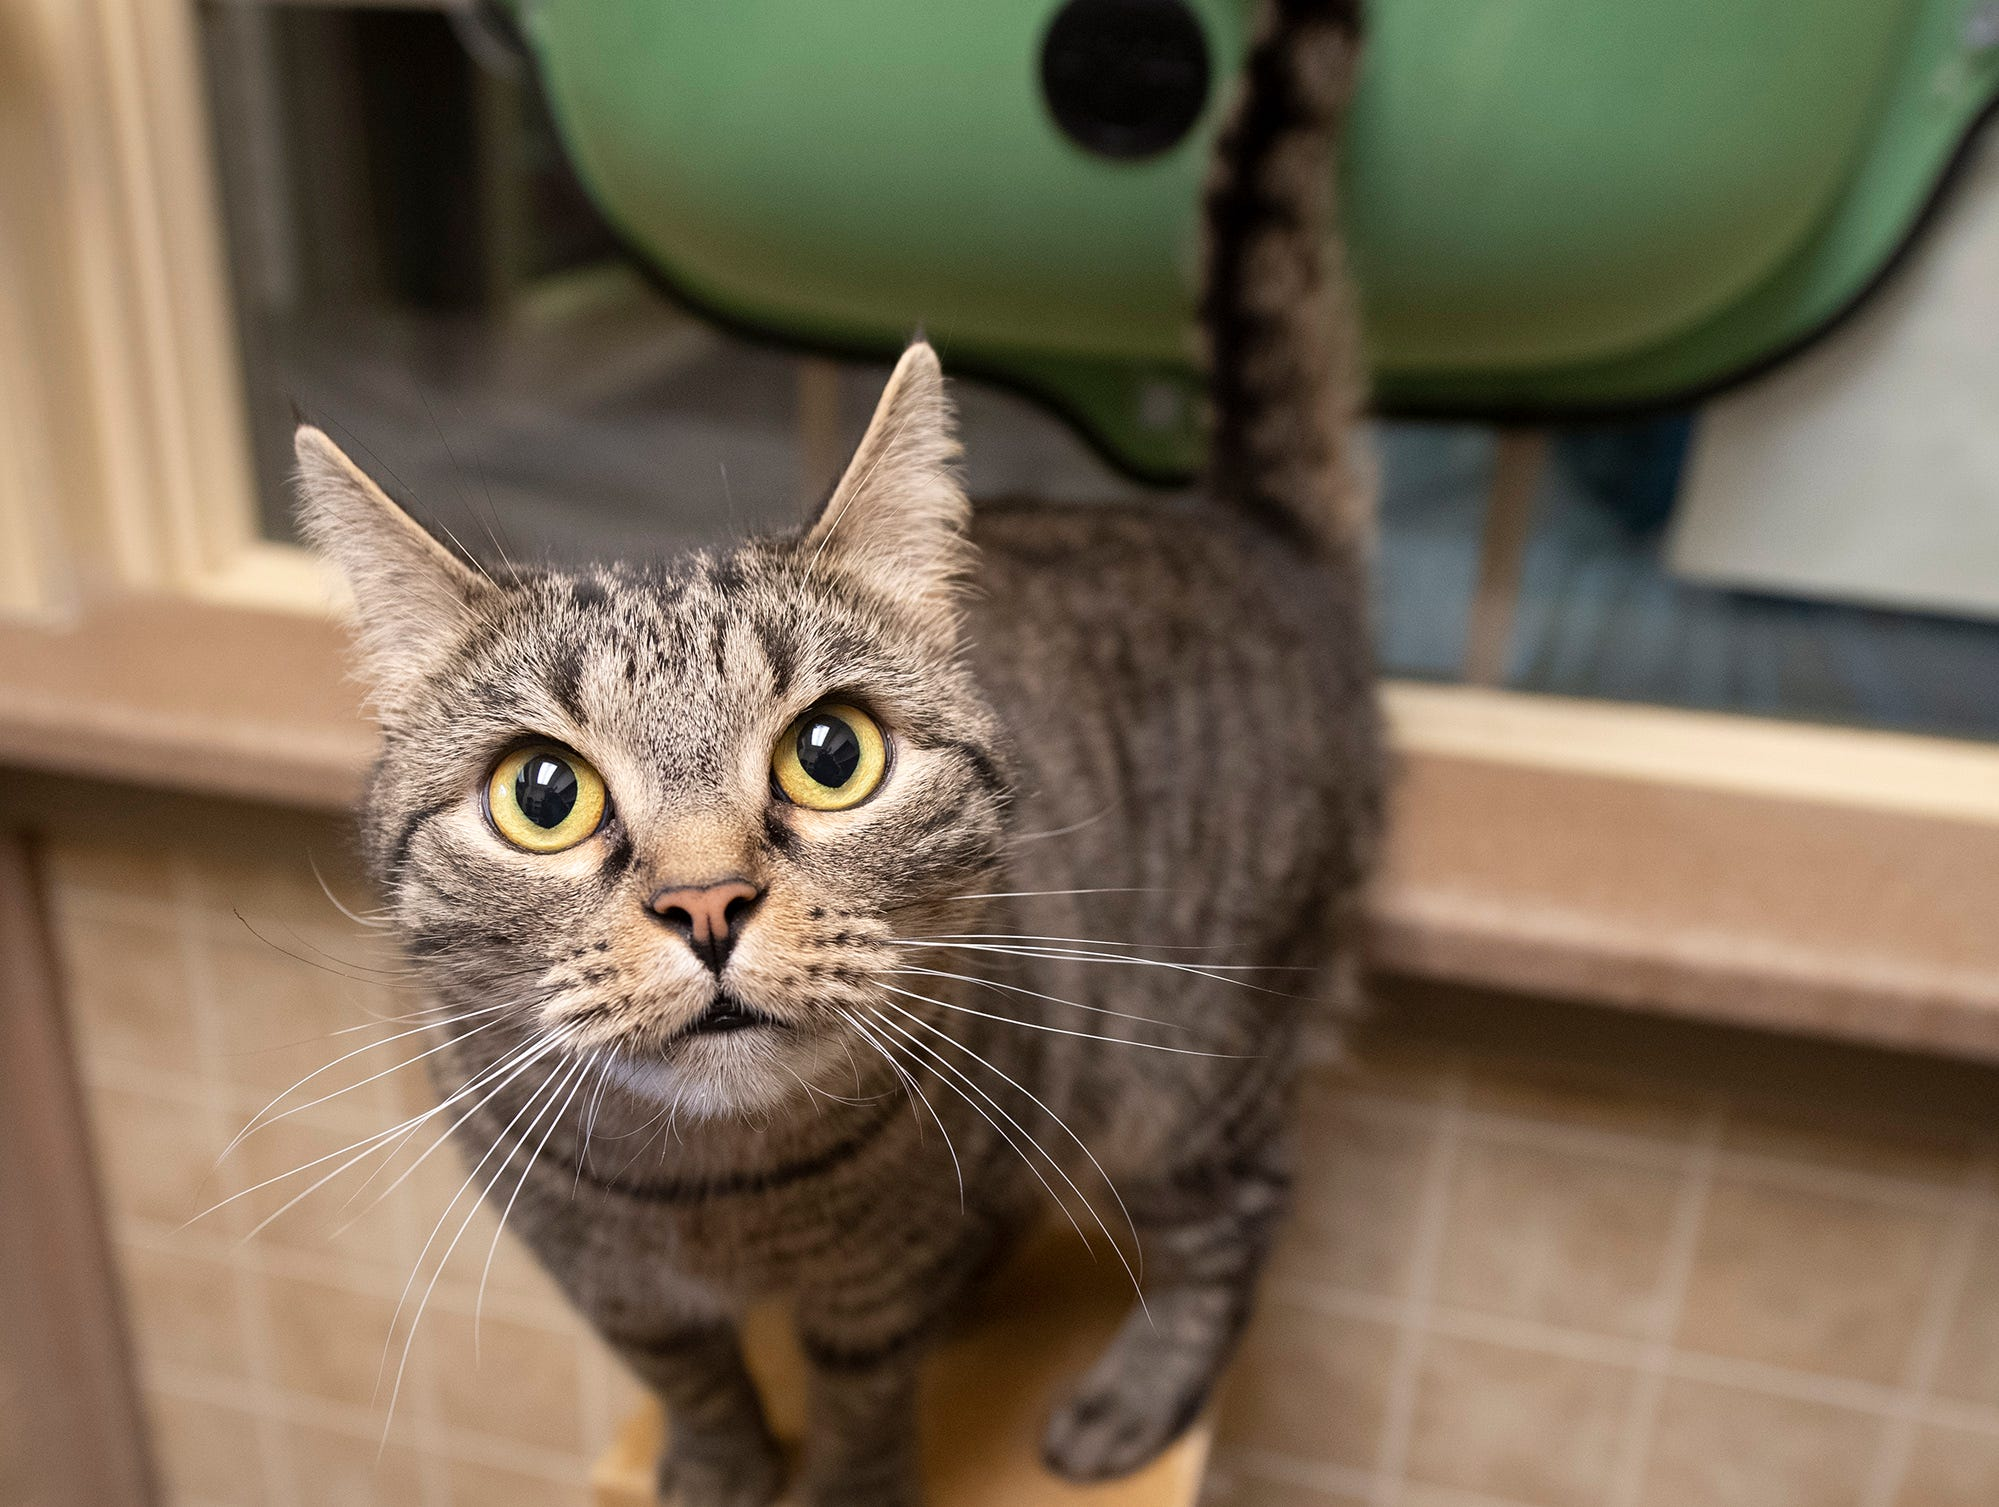 My name is Purricane and I was found on East Market Street in York. I am female and about 4 years old.